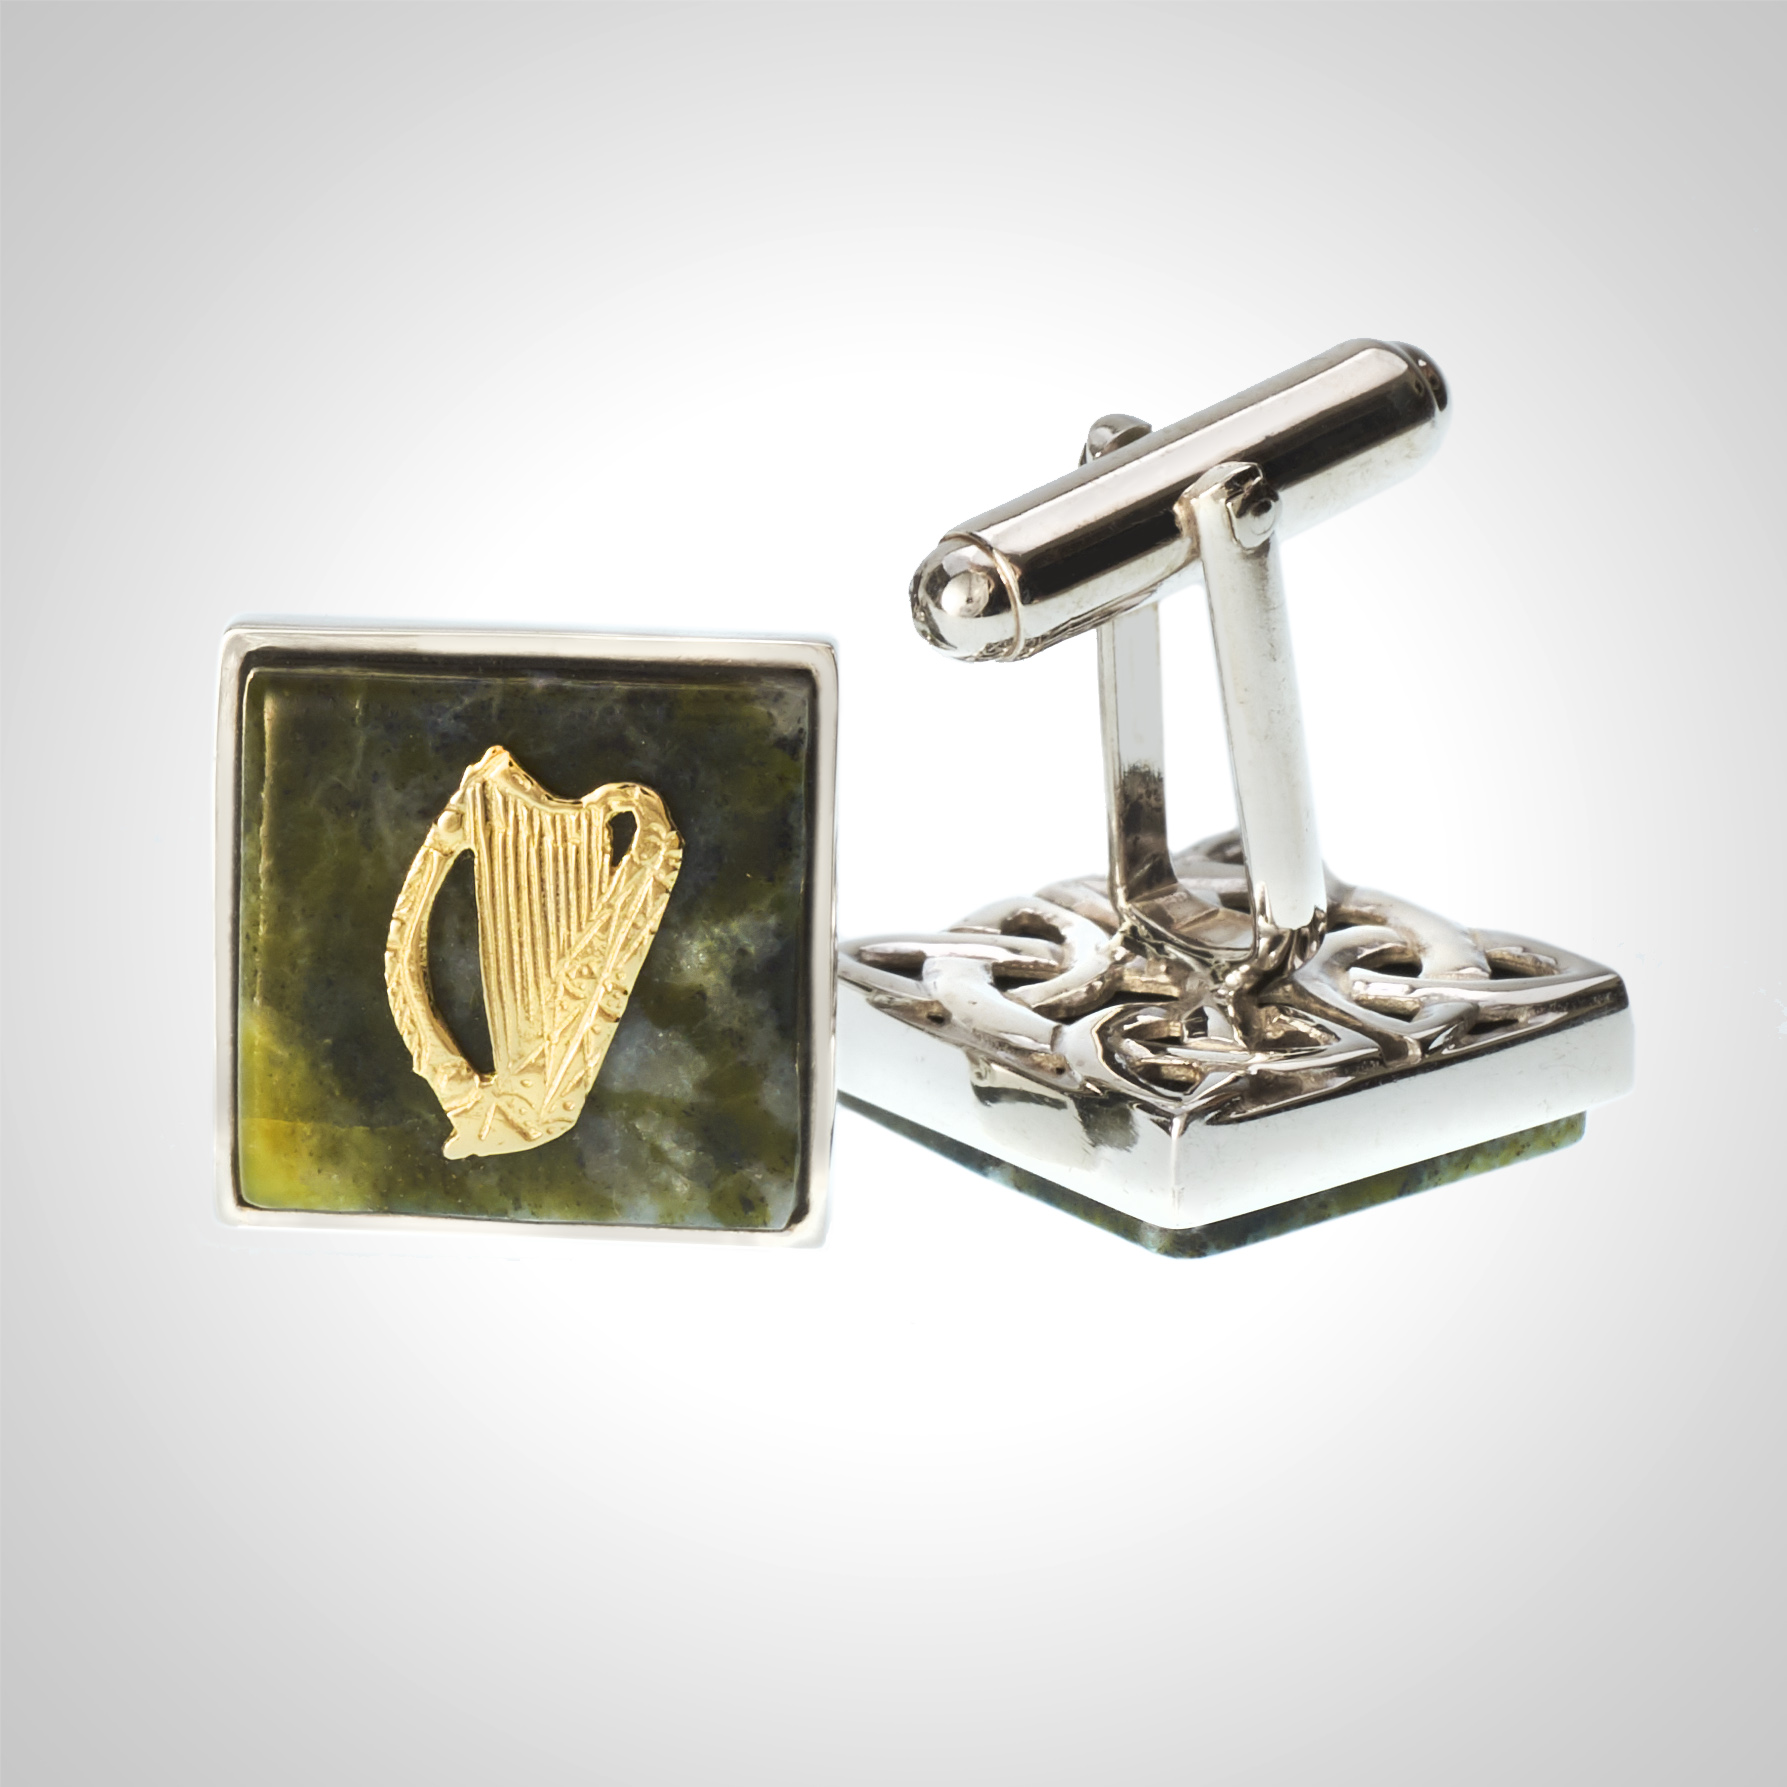 Connemara Marble and Gold Harp Cuff links